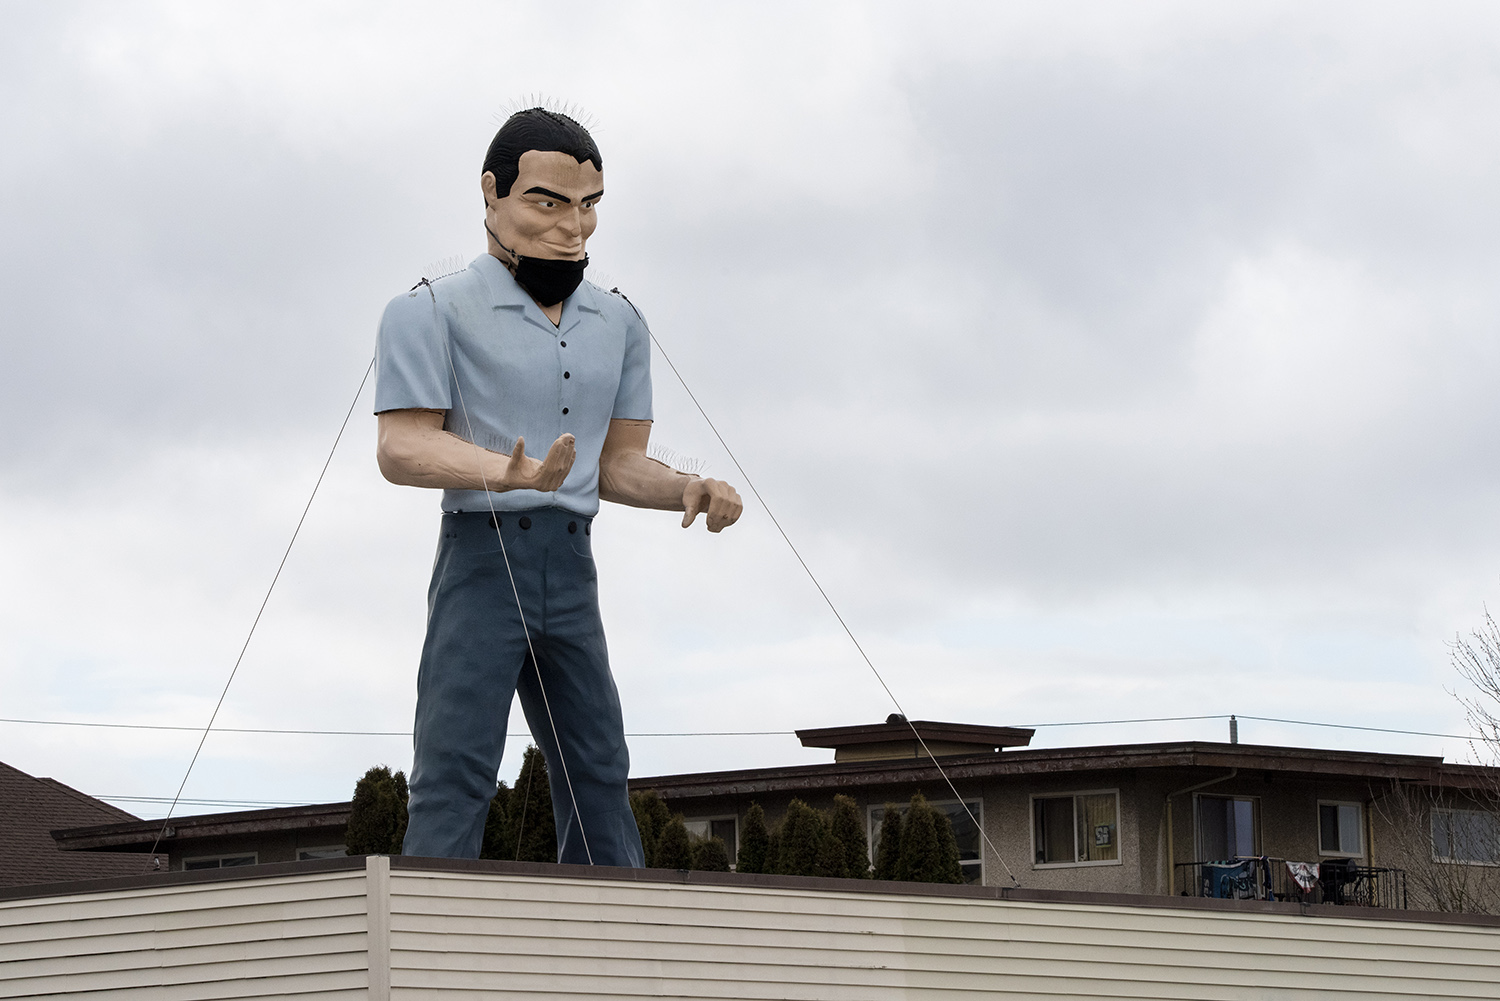 The 20-foot fiberglass structure has been peering over the city since 1983 when Stevedoring Services of America positioned the gigantic man on the roof. (Rachael Jones / Seattle Refined)